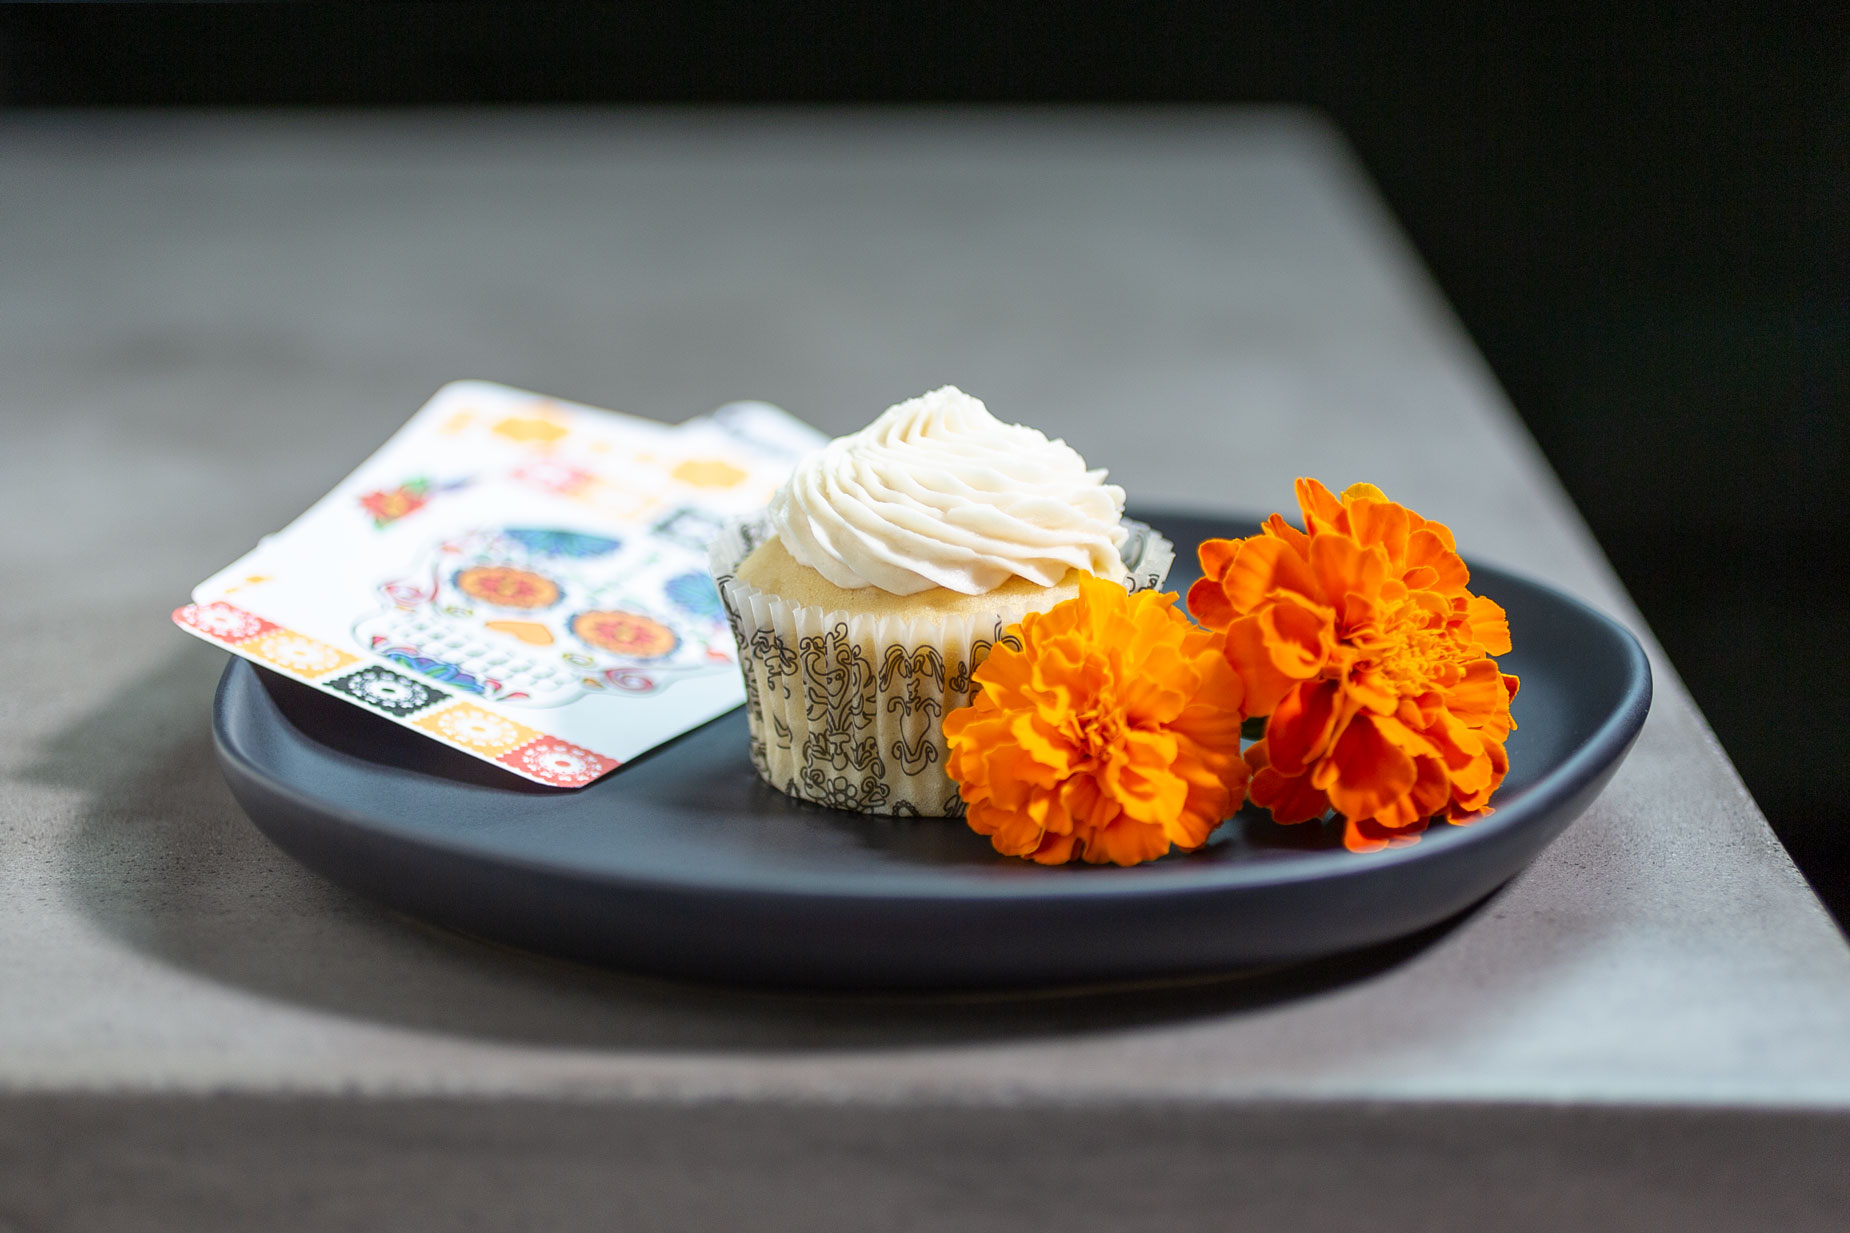 Arroz con Leche Cupcake for Day of the Dead (Dia de Los Muertos) by Sam Henderson of Today's Nest.